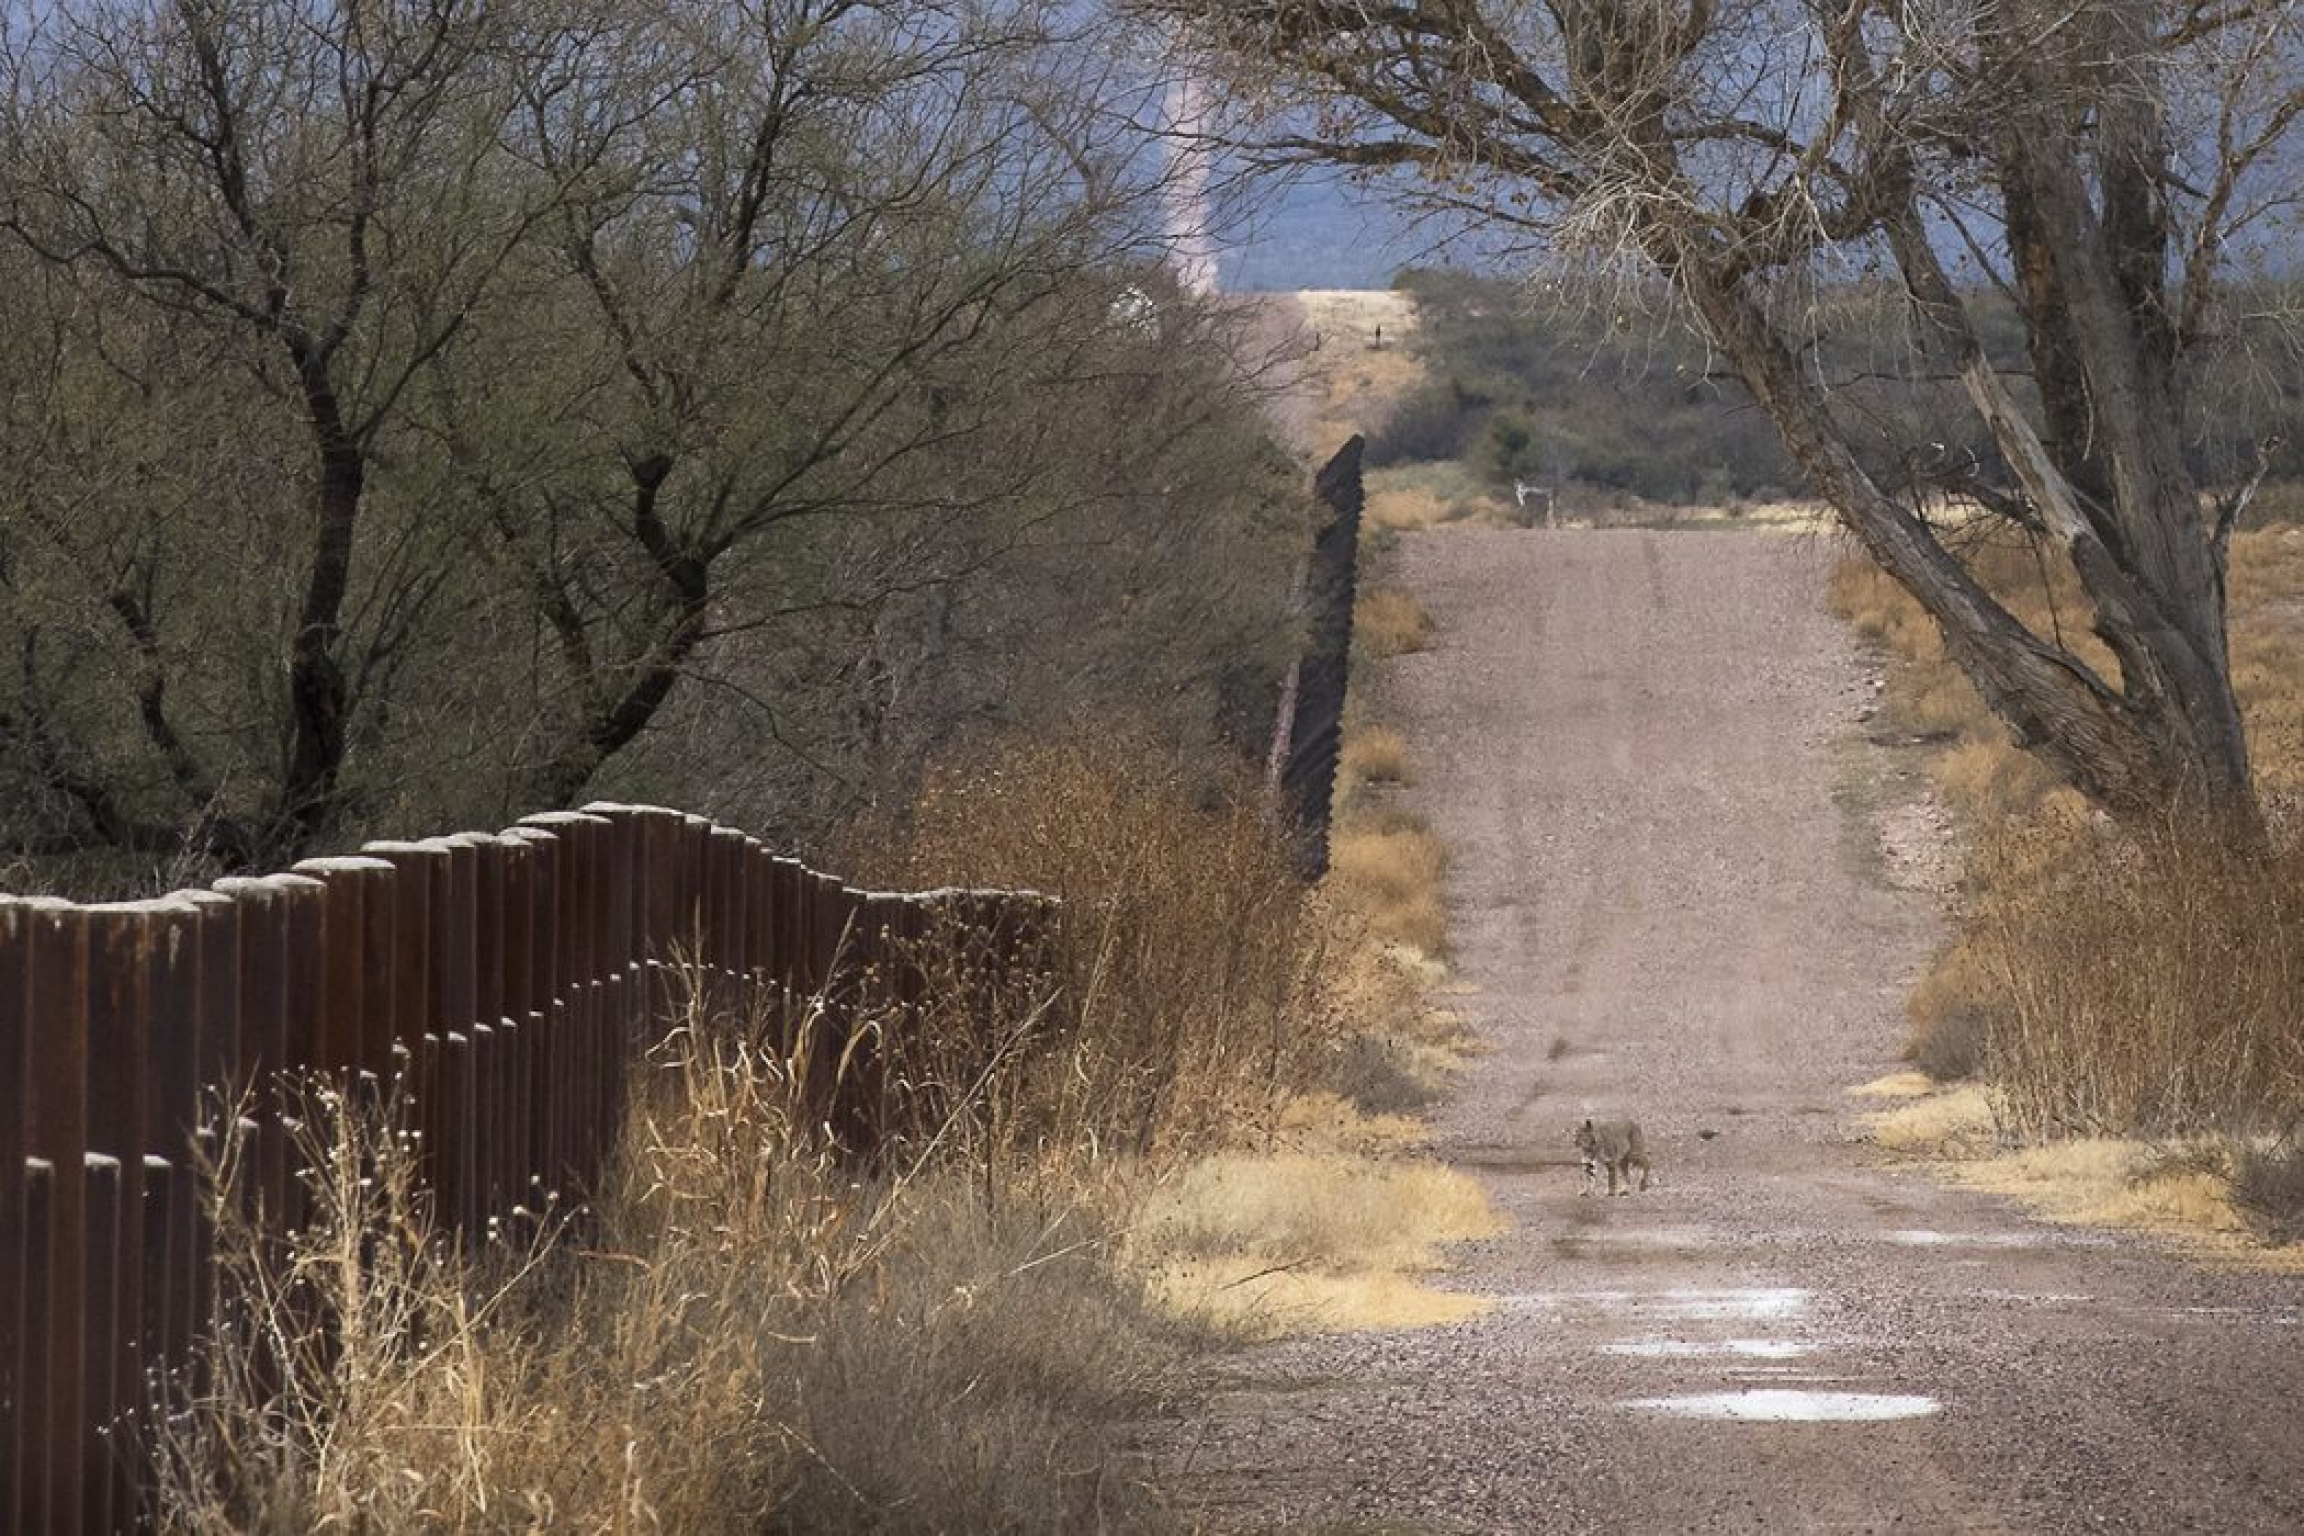 An animal is shown in the distance walking along a dirt road with trees along one side and the US-Mexico border wall along the other side.